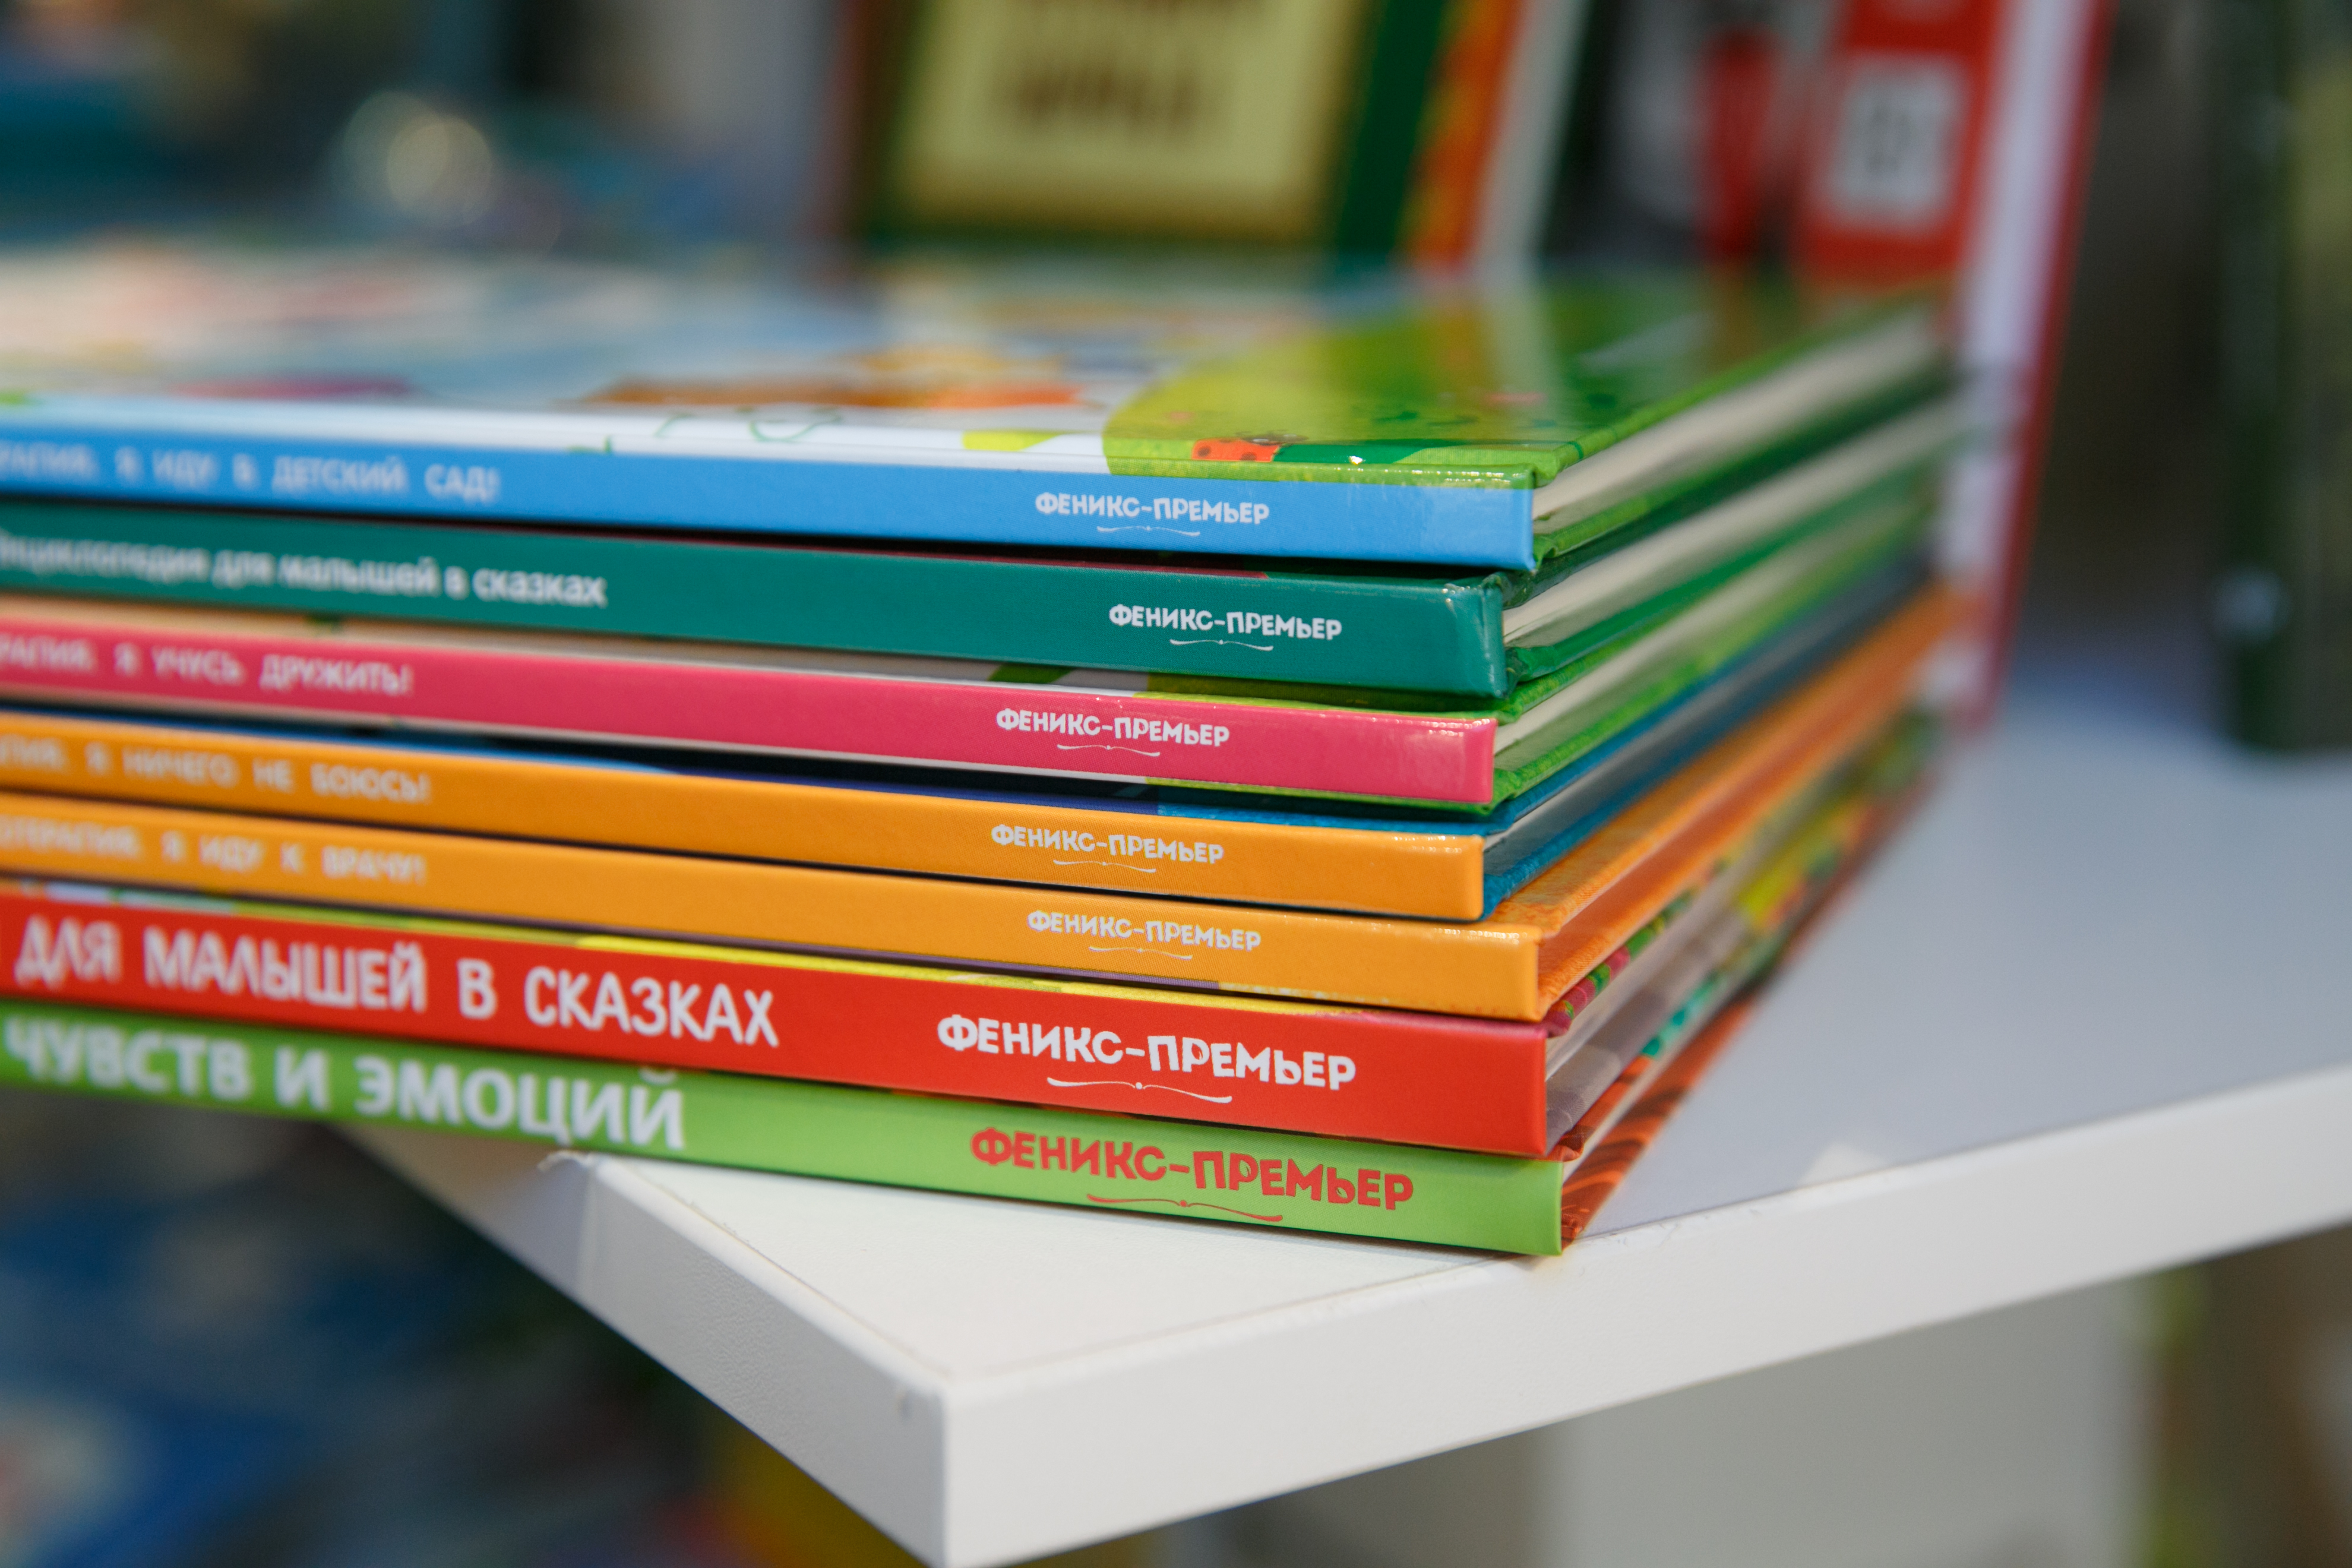 Obuv Rossii will sell books by Phoenix Publishing House